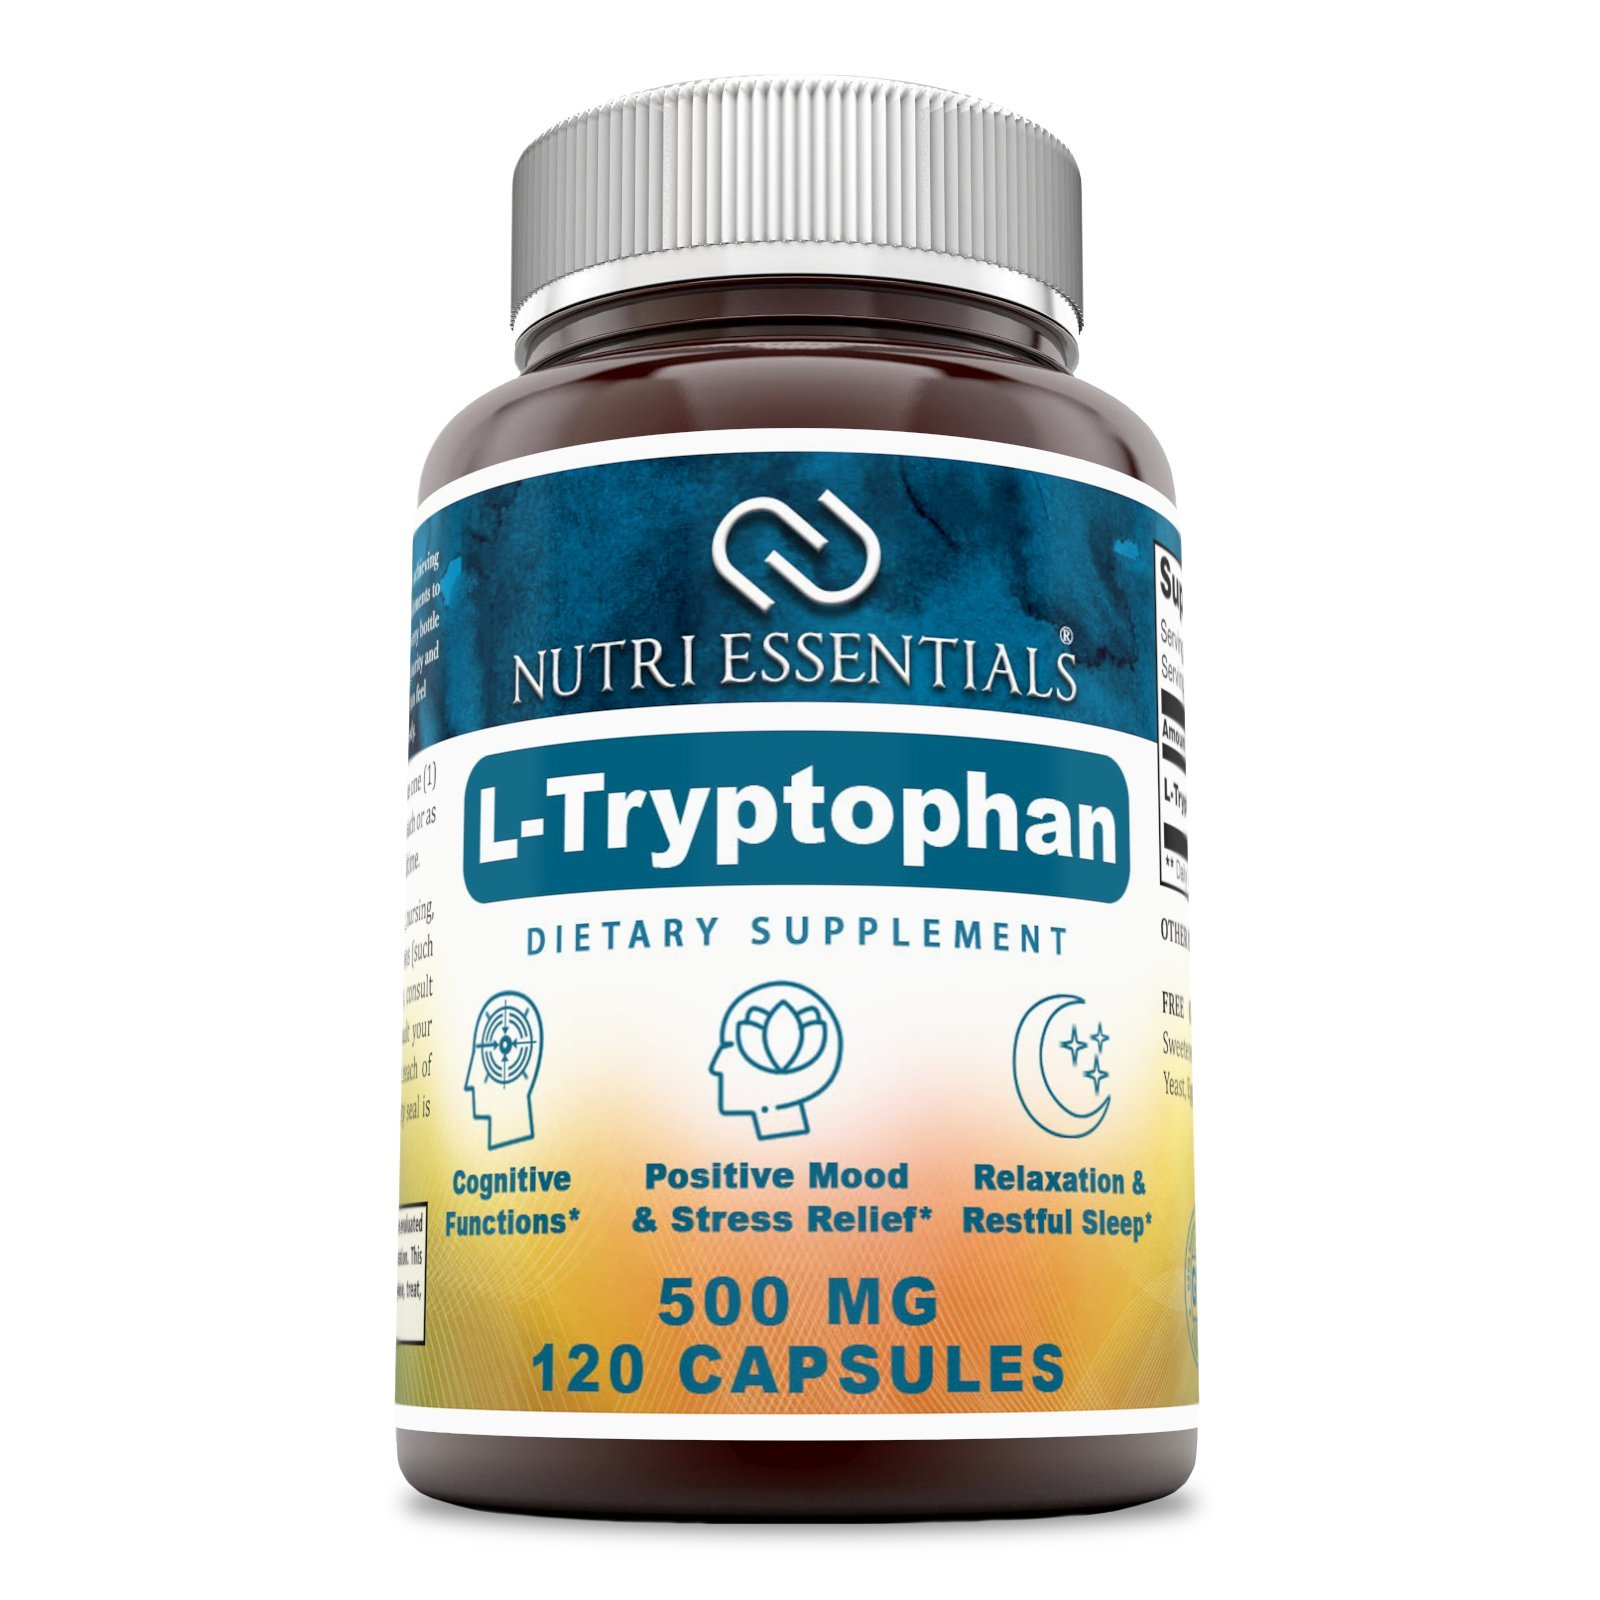 Nutri Essentials L-Tryptophan Dietary Supplement - Natural Sleep Aid Supplements with 500 mg of Free Form L Tryptophan - For Stress Relief, Circulation & Immune Support 120 Capsules